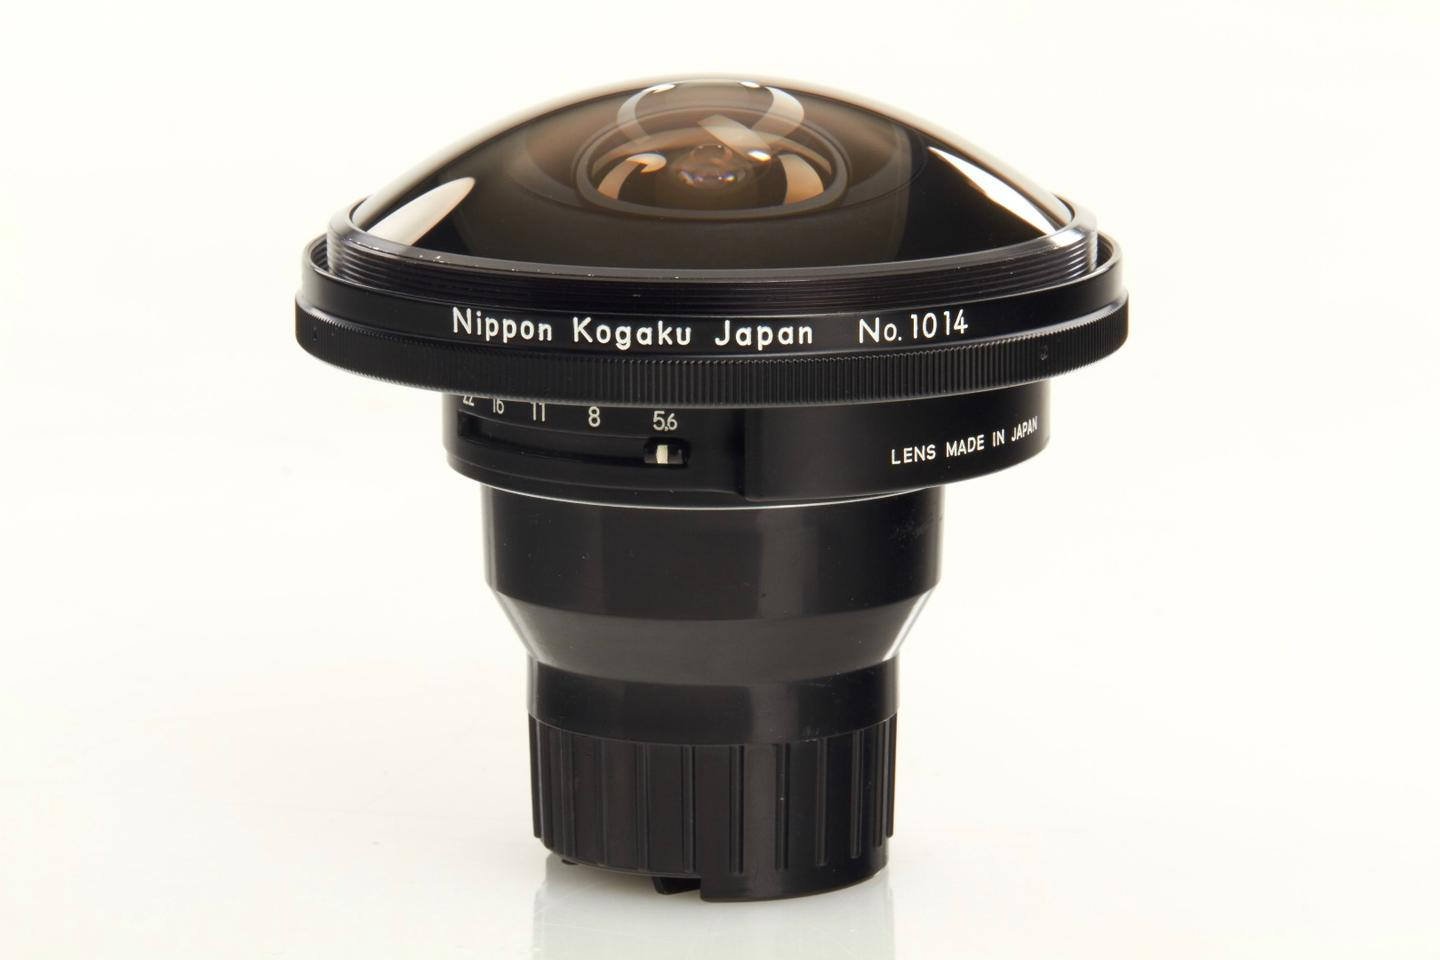 The Nikon Fisheye Nikkor F5.6 6.2-mm SAP is expected to fetch up to US$50,000 at auction